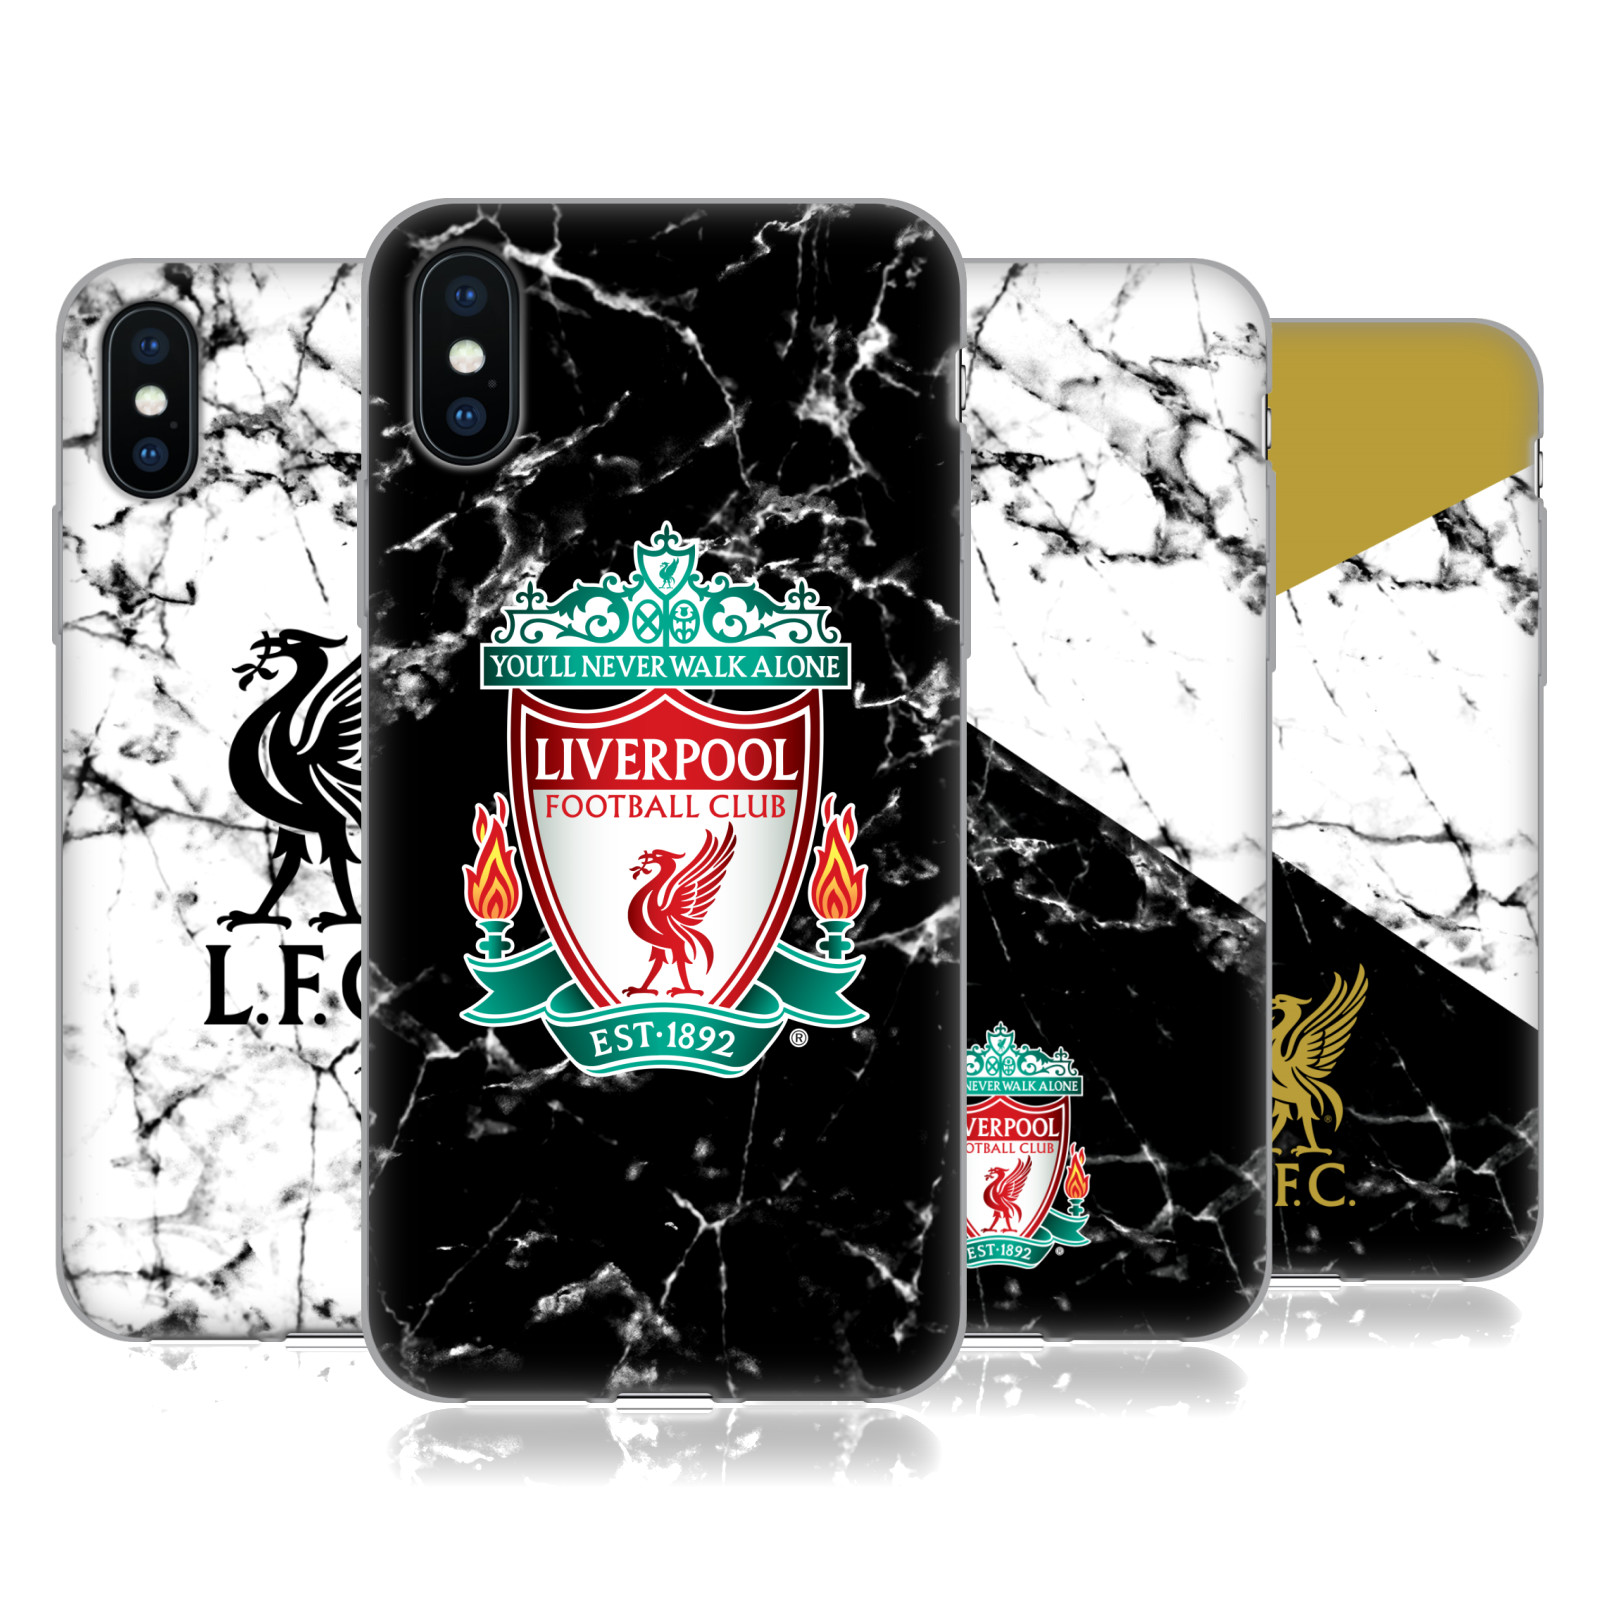 Liverpool Football Club 2017/18 Marble